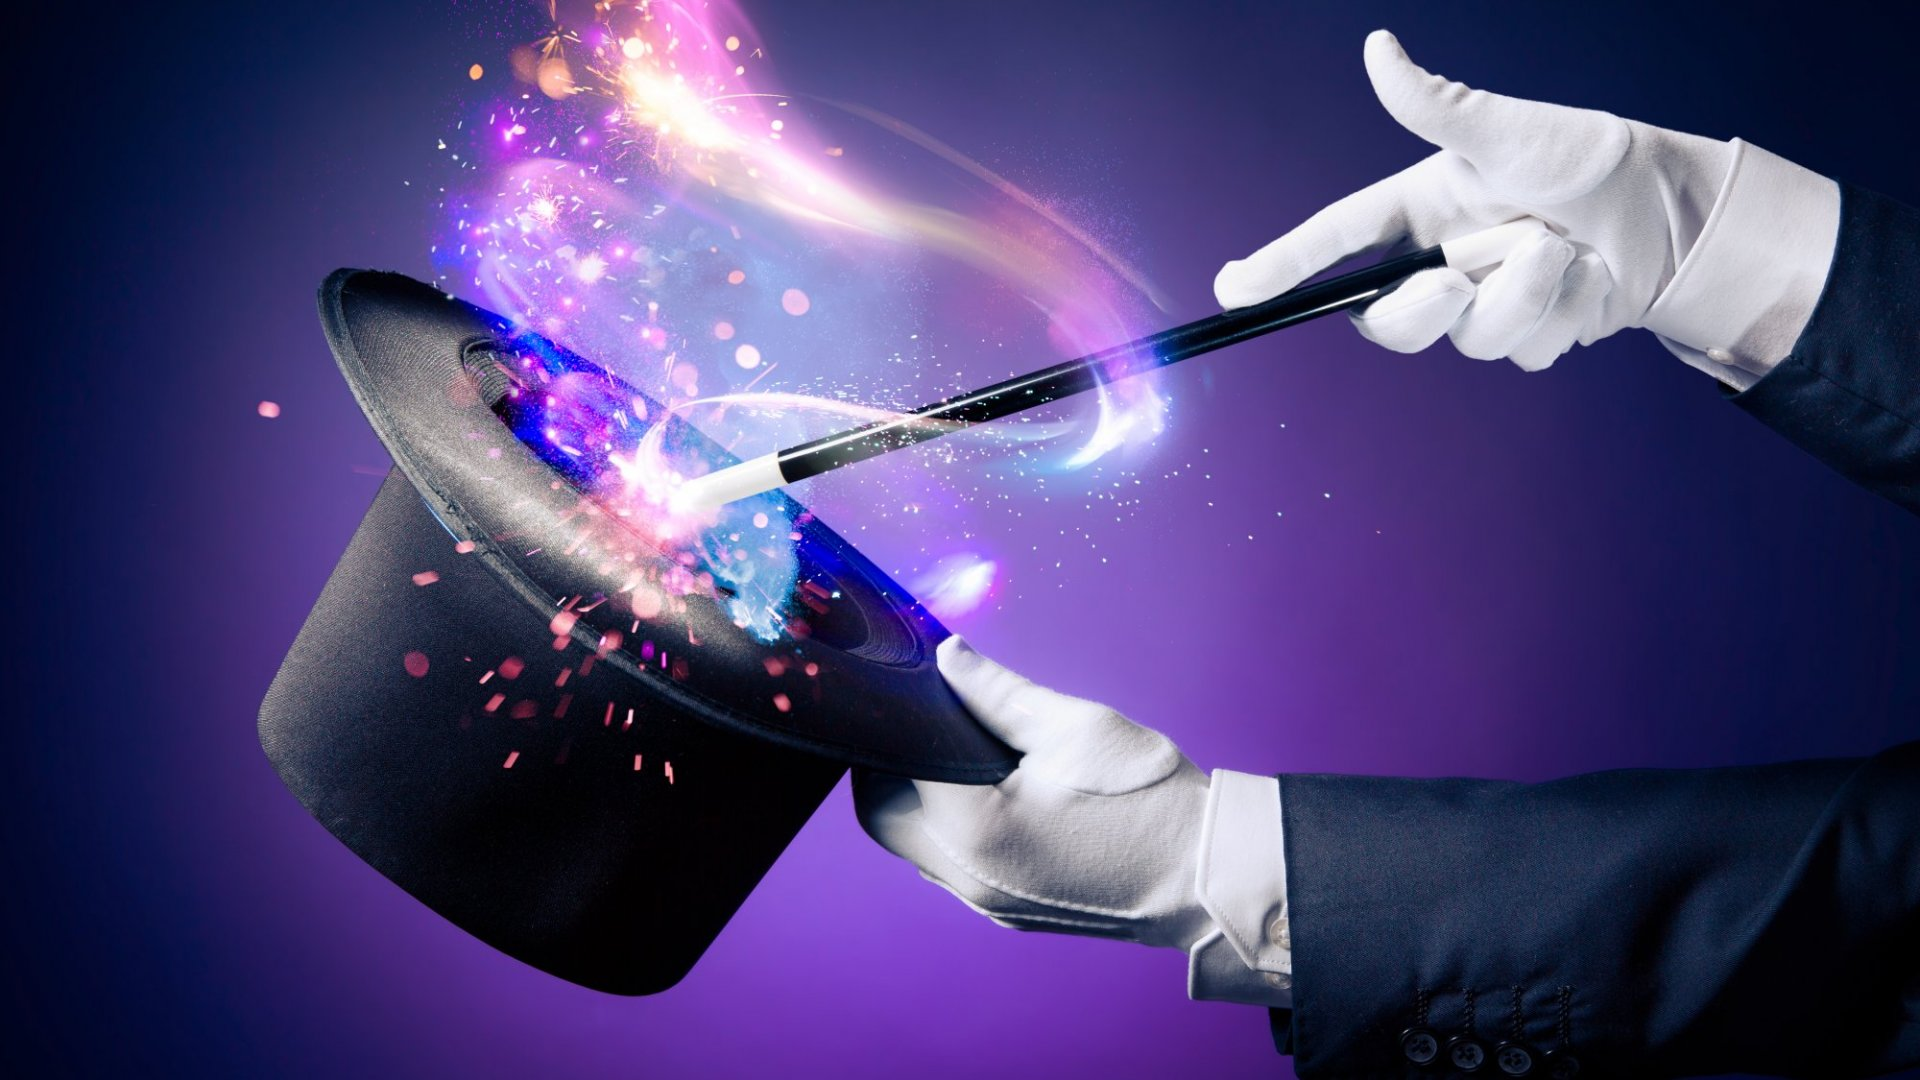 3 Magic Traits for Business Growth